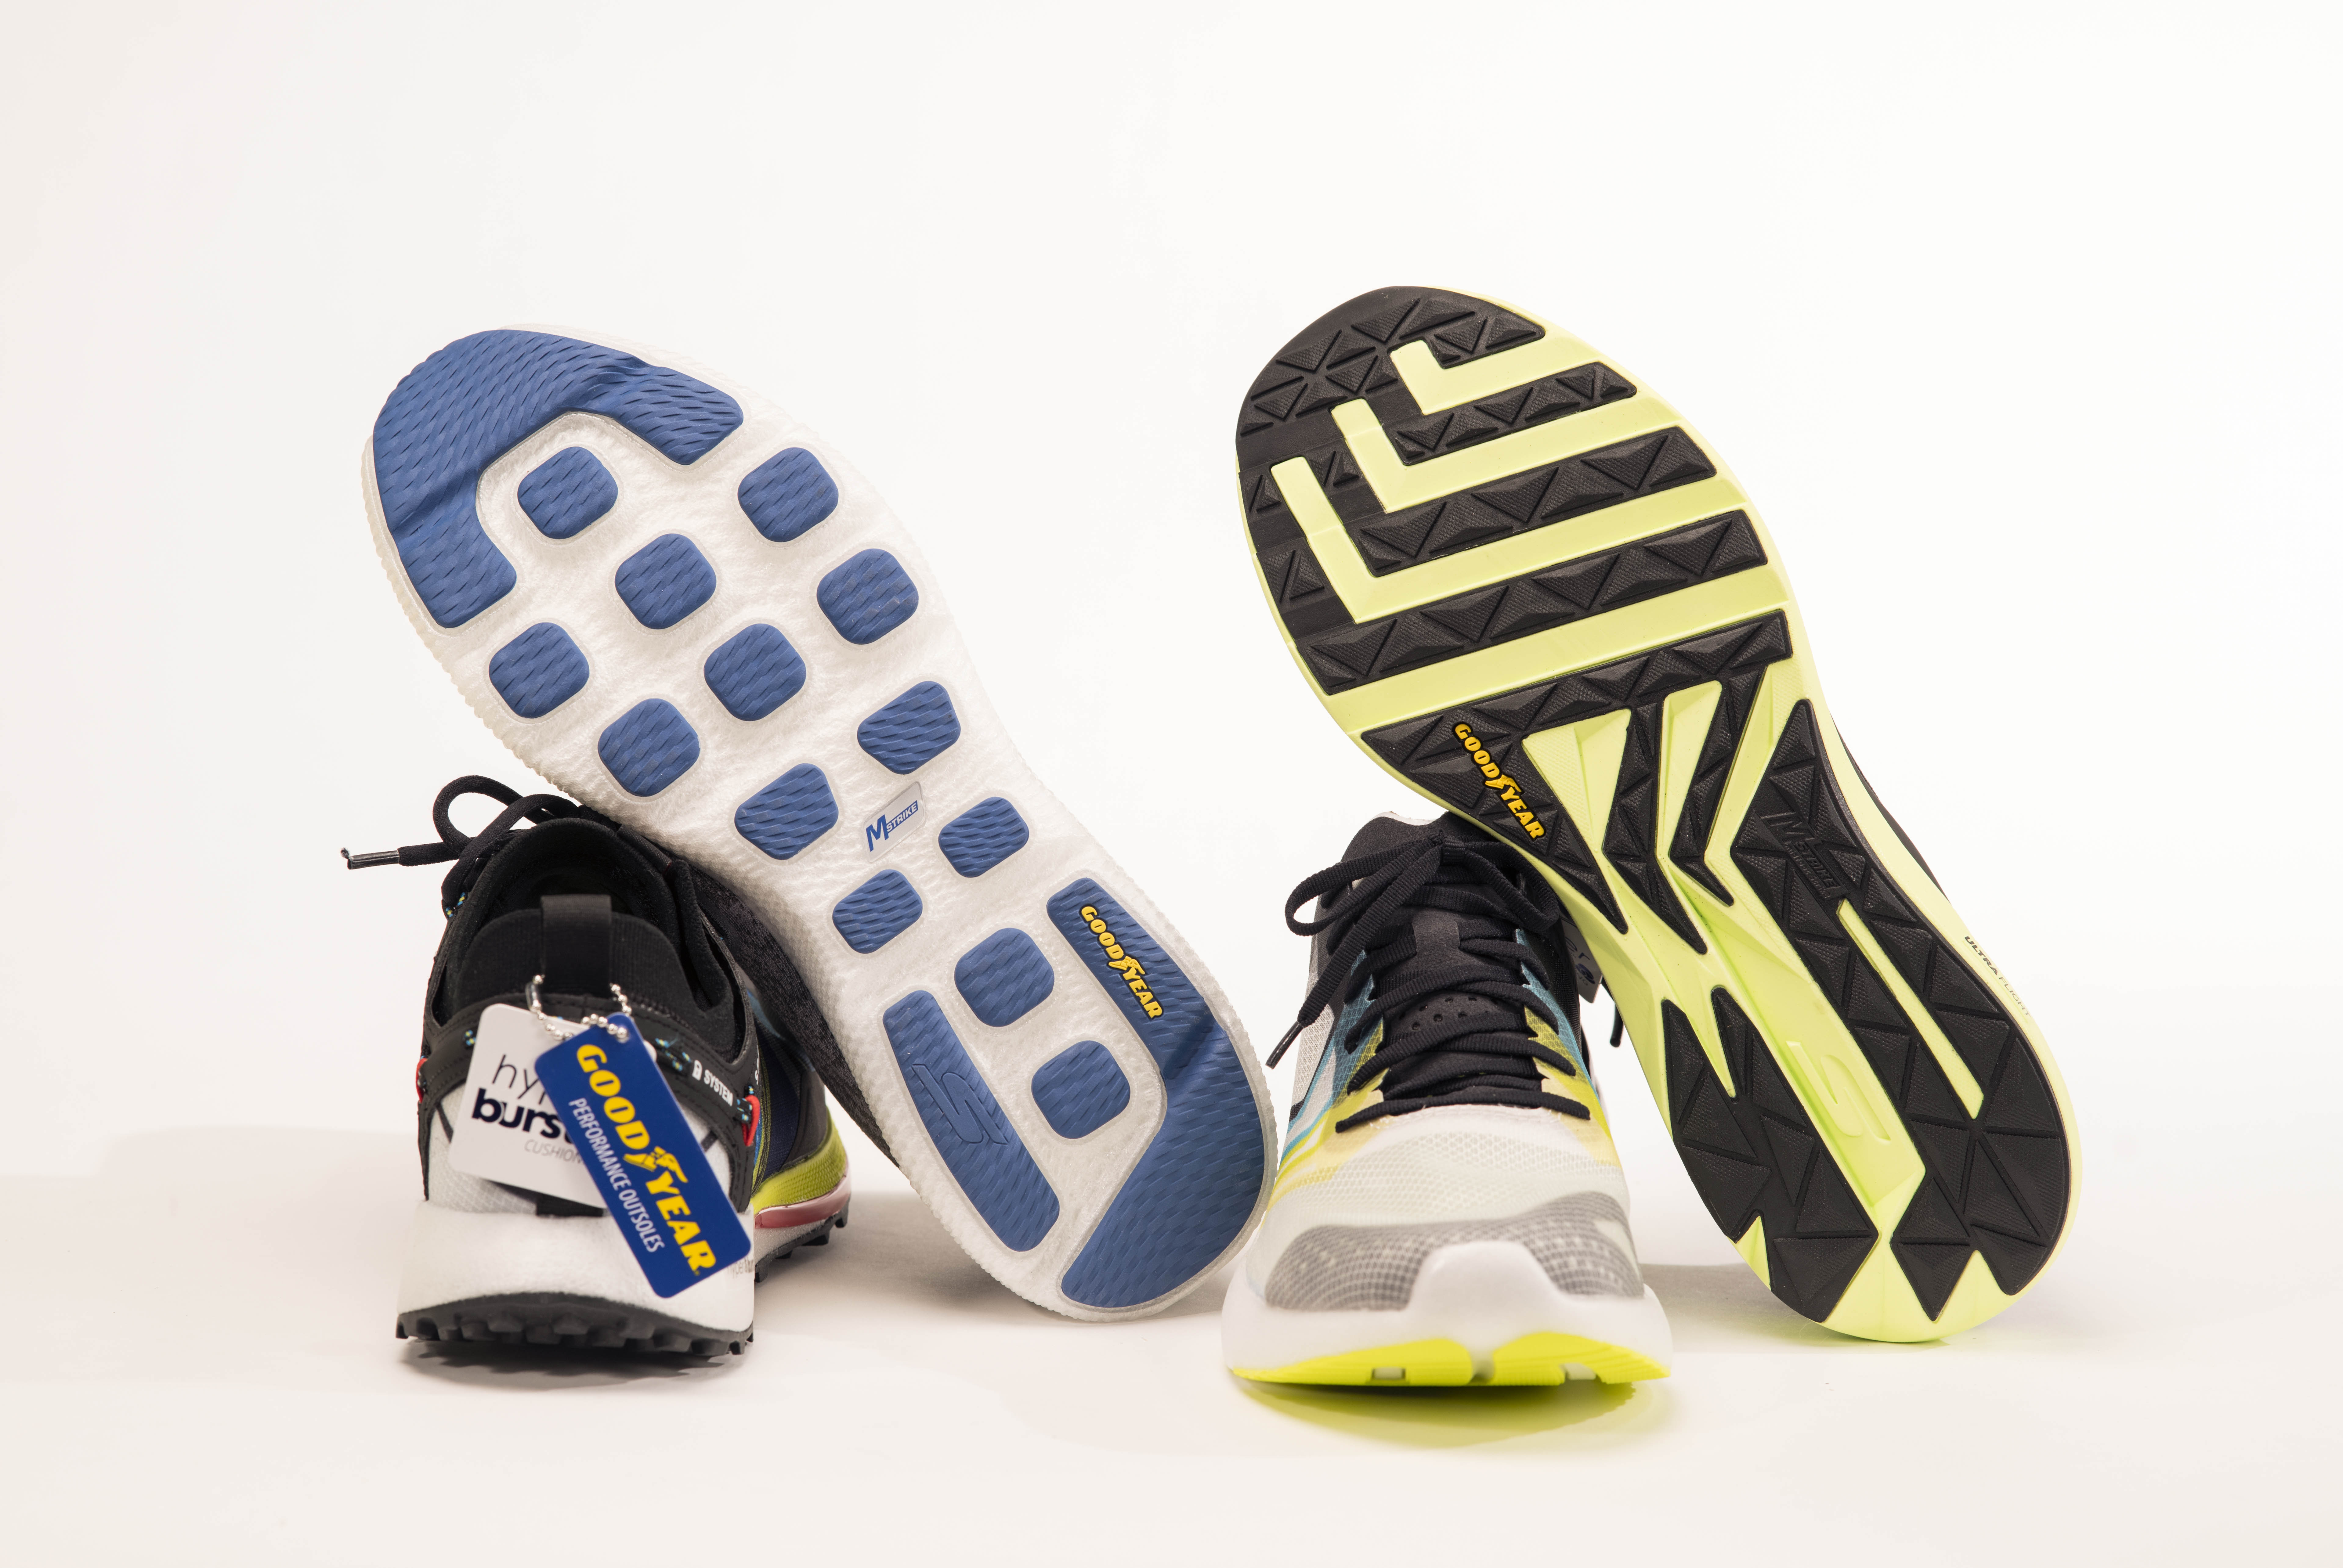 Skechers Collaborates with Goodyear on